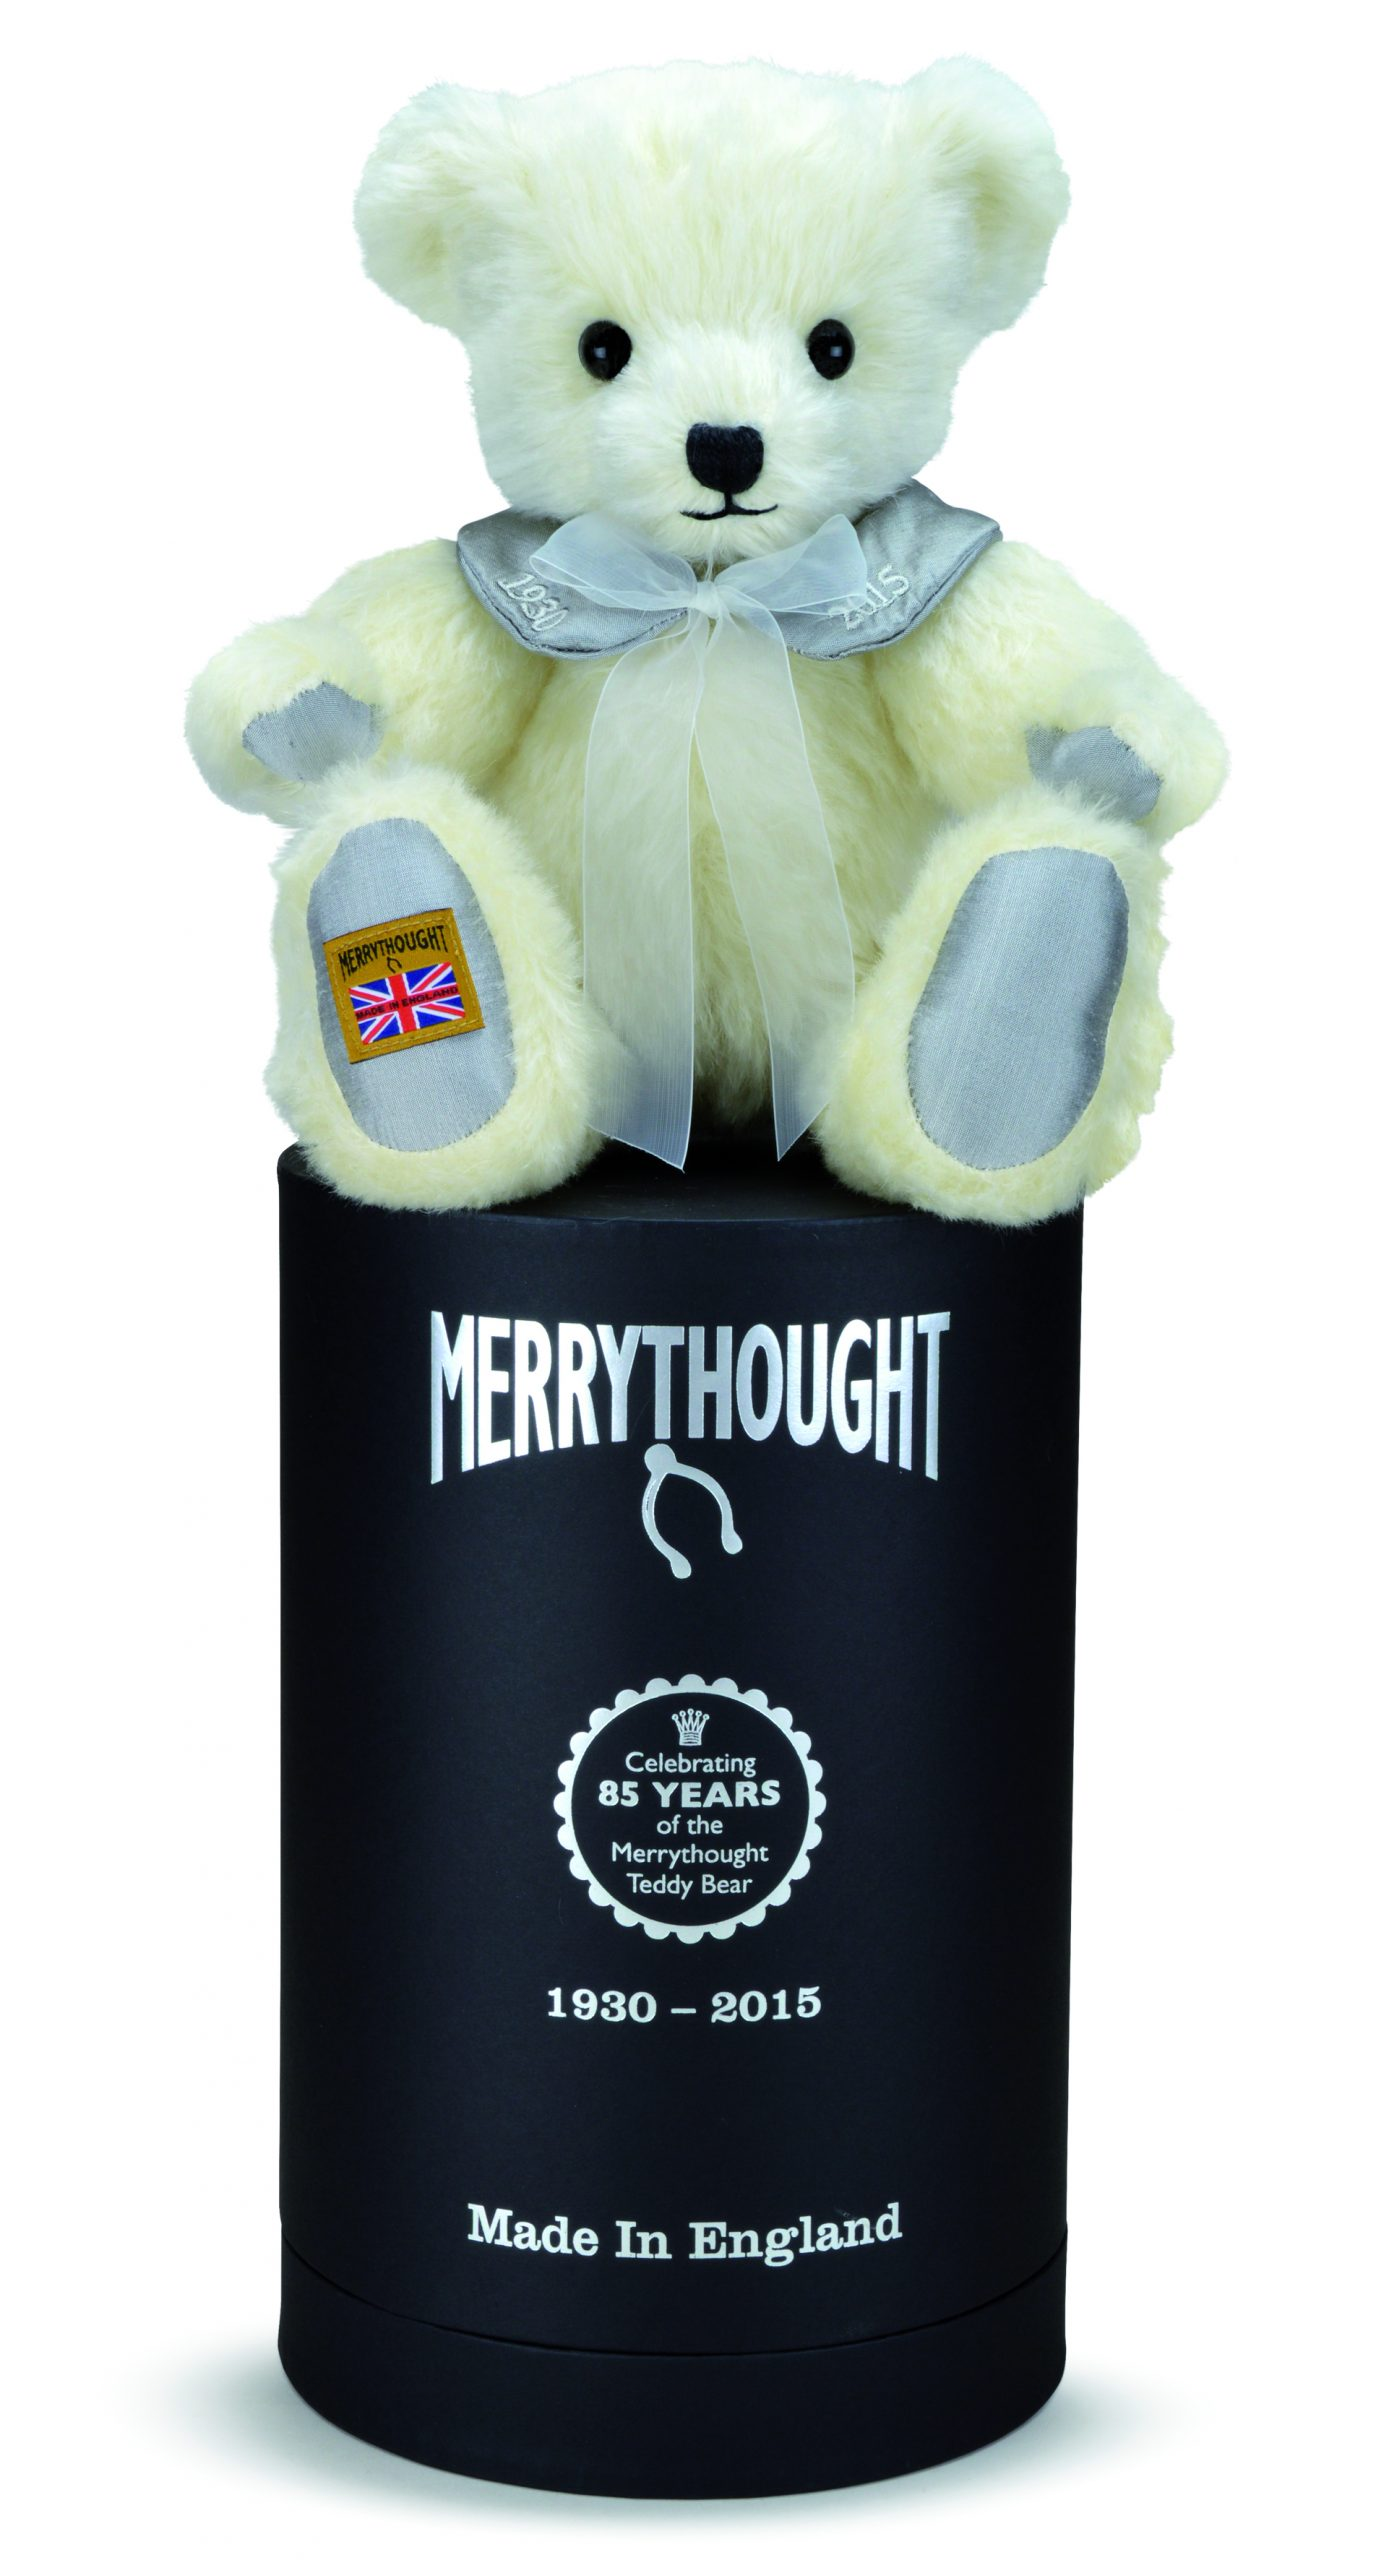 Merrythought 85th anniversary limited edition bear